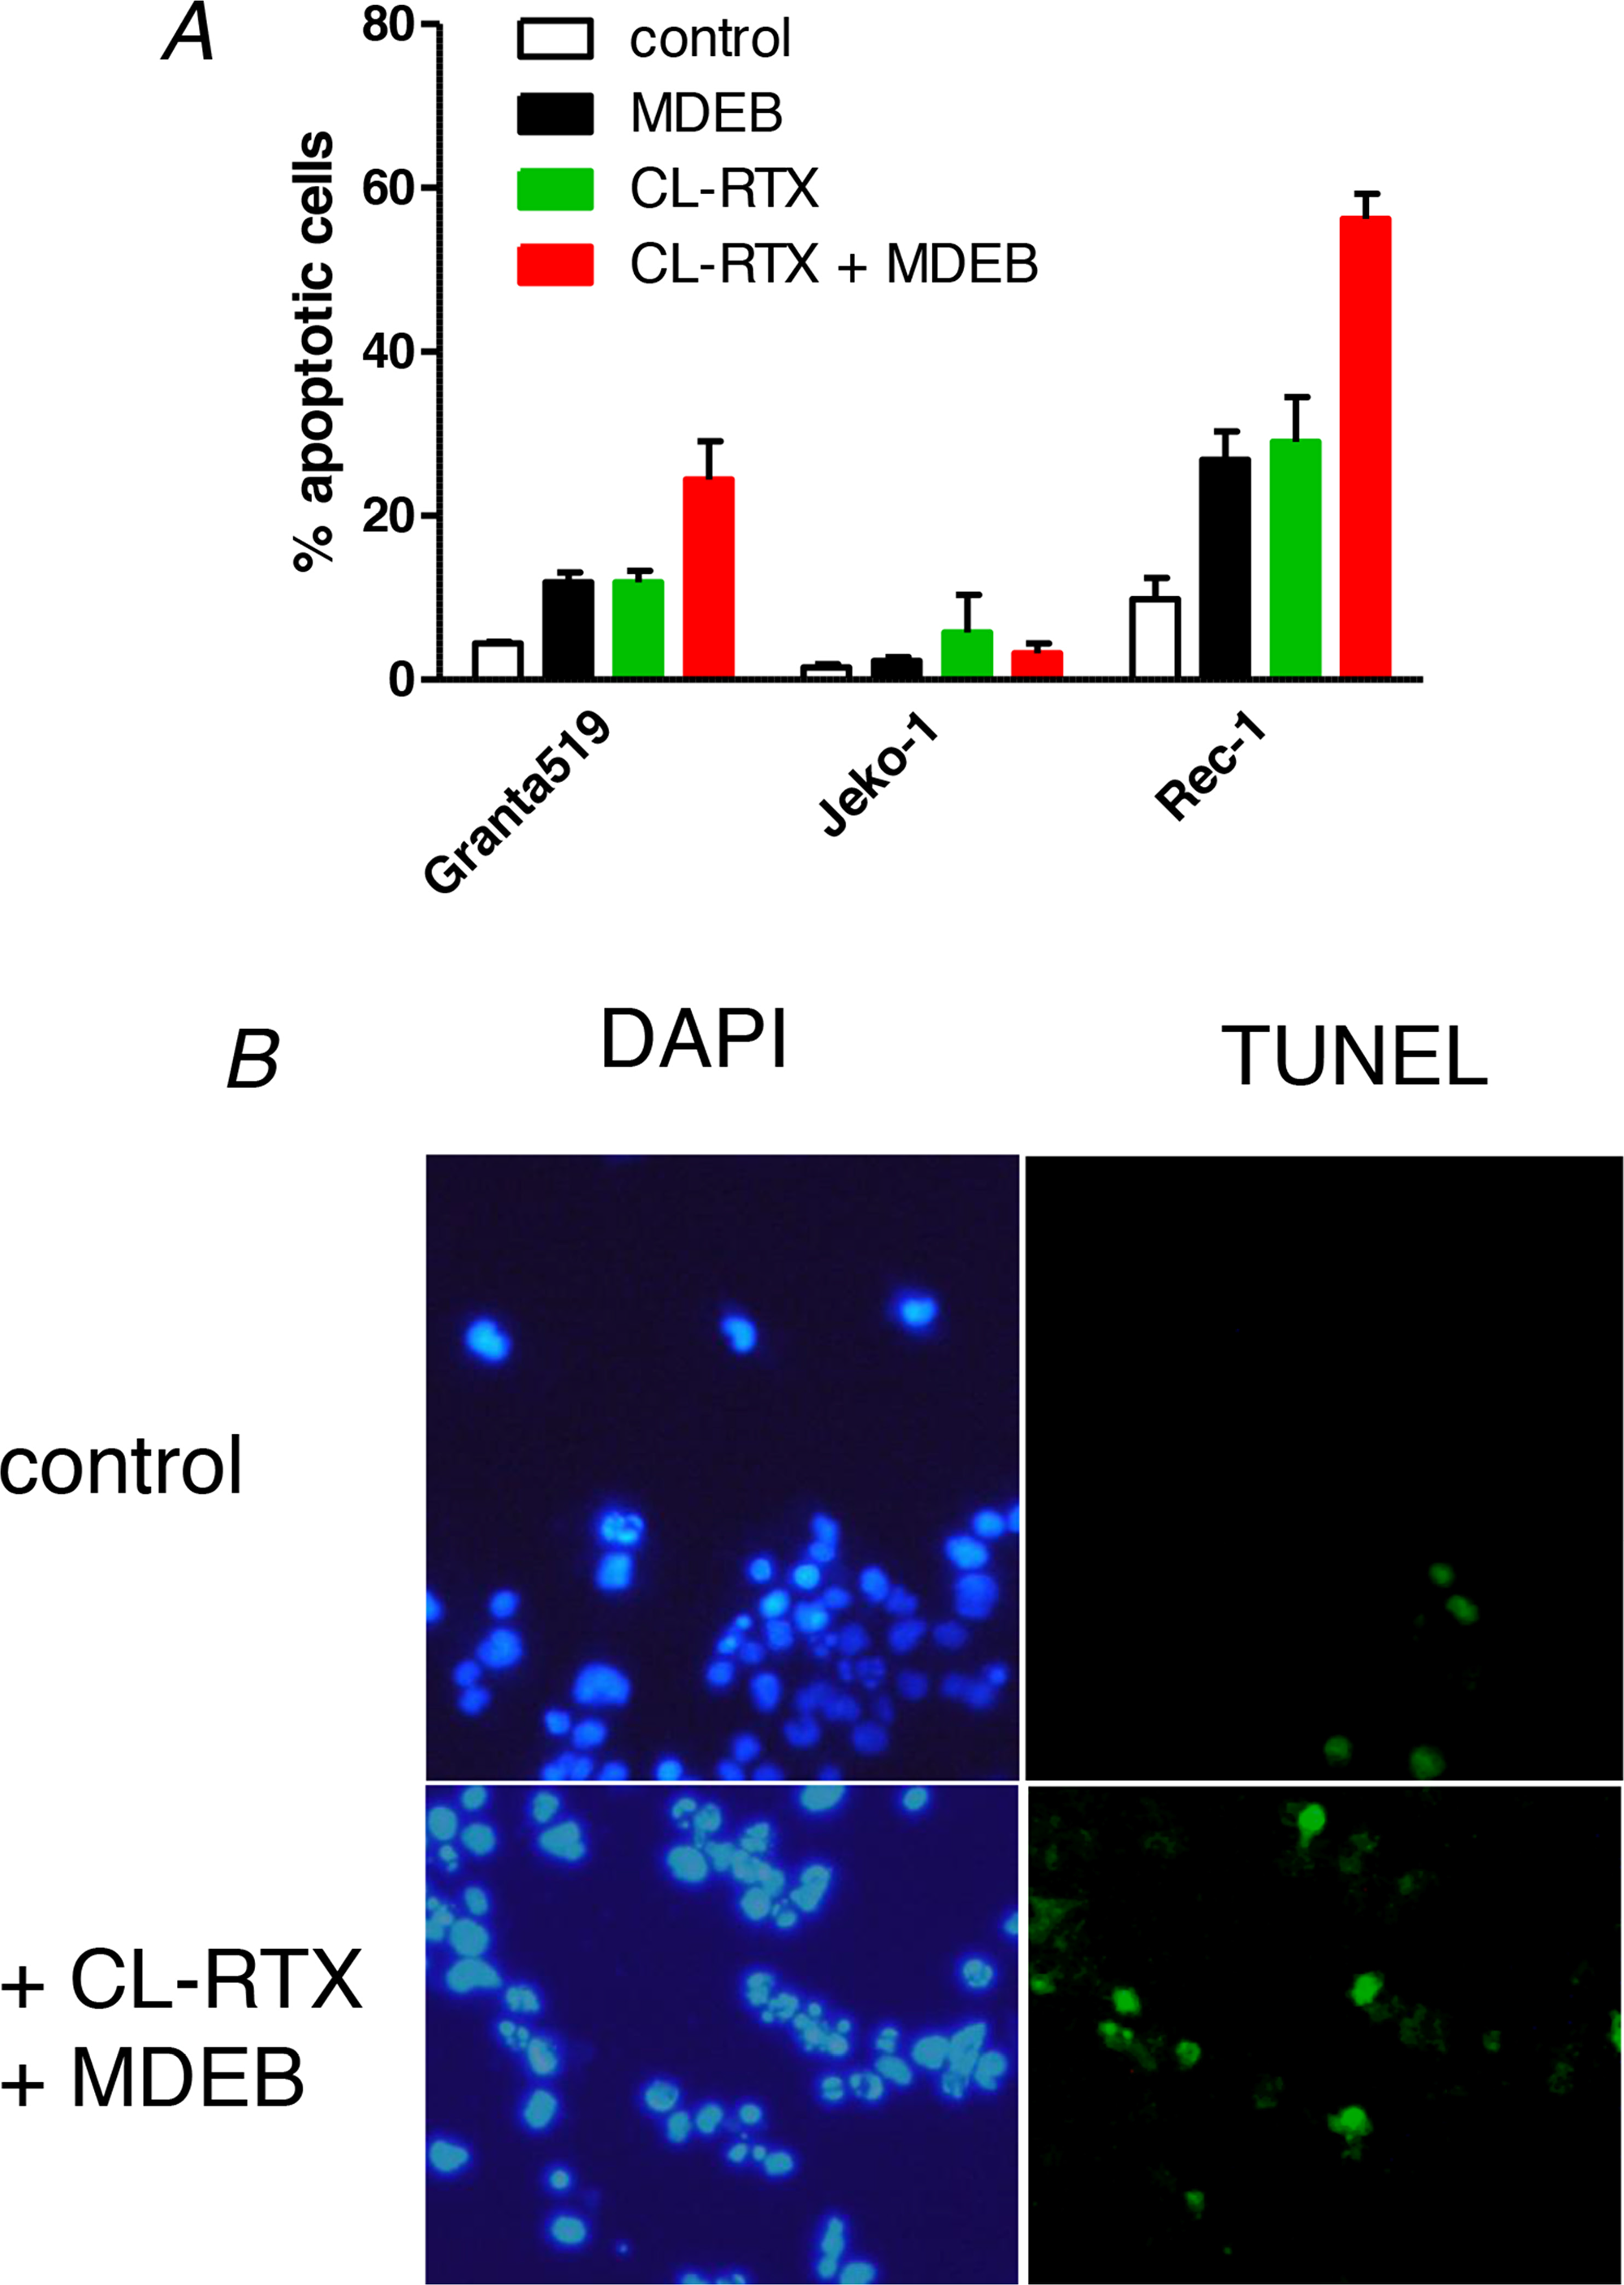 MDEB reinforce RTX-induced apoptosis of RTX-sensitive cell lines.